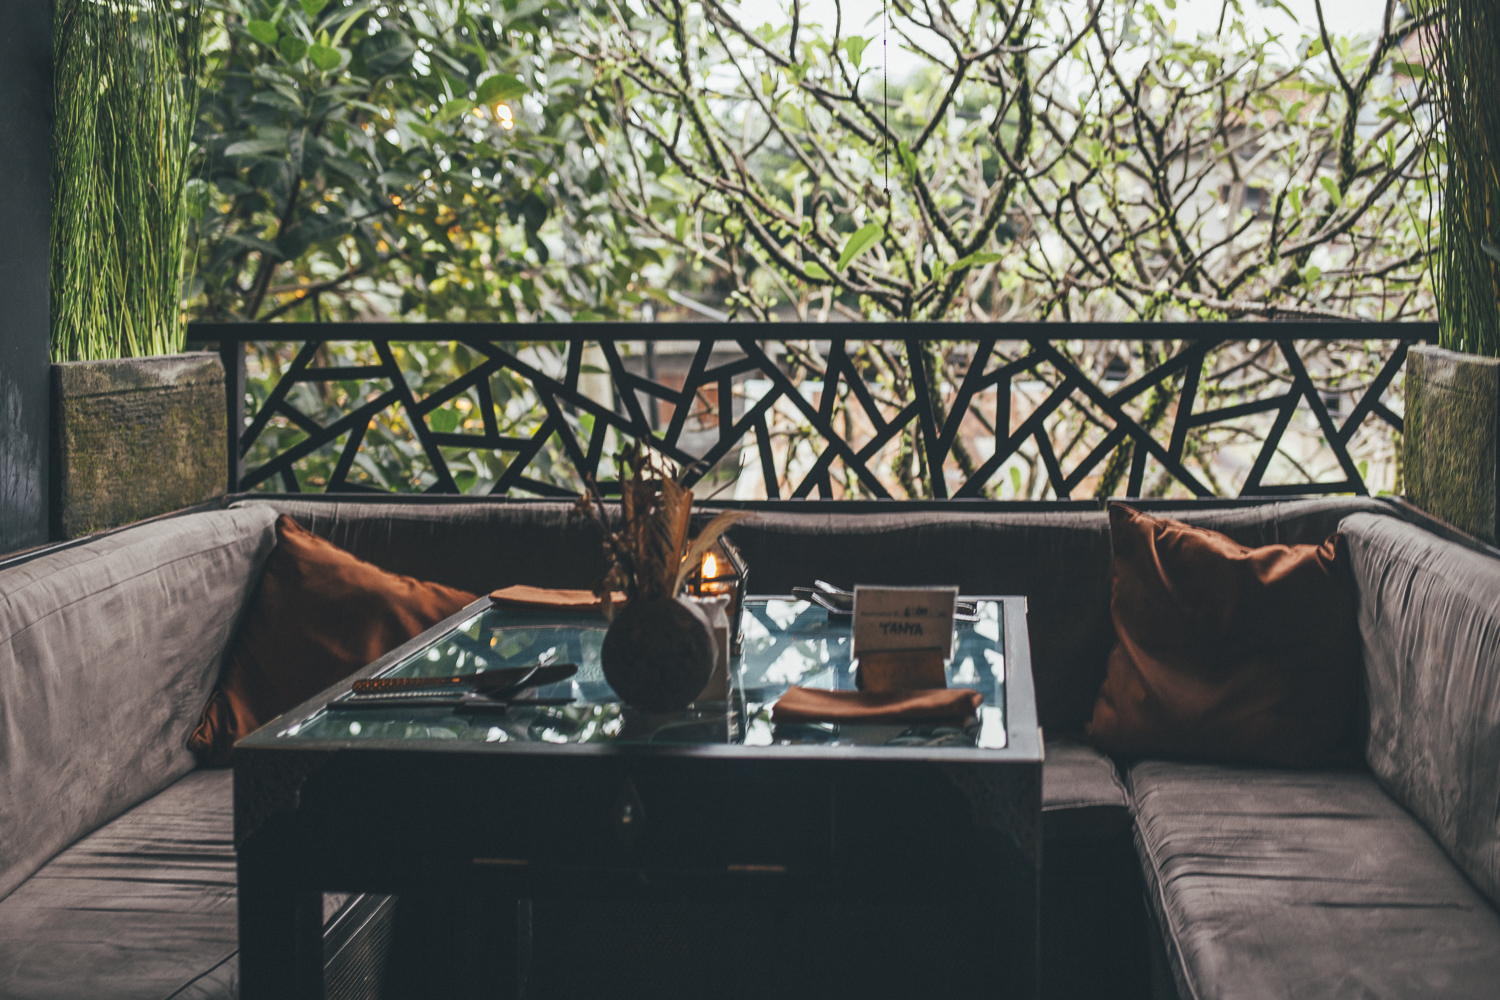 Bali Food guide: Kismet Restaurant Ubud